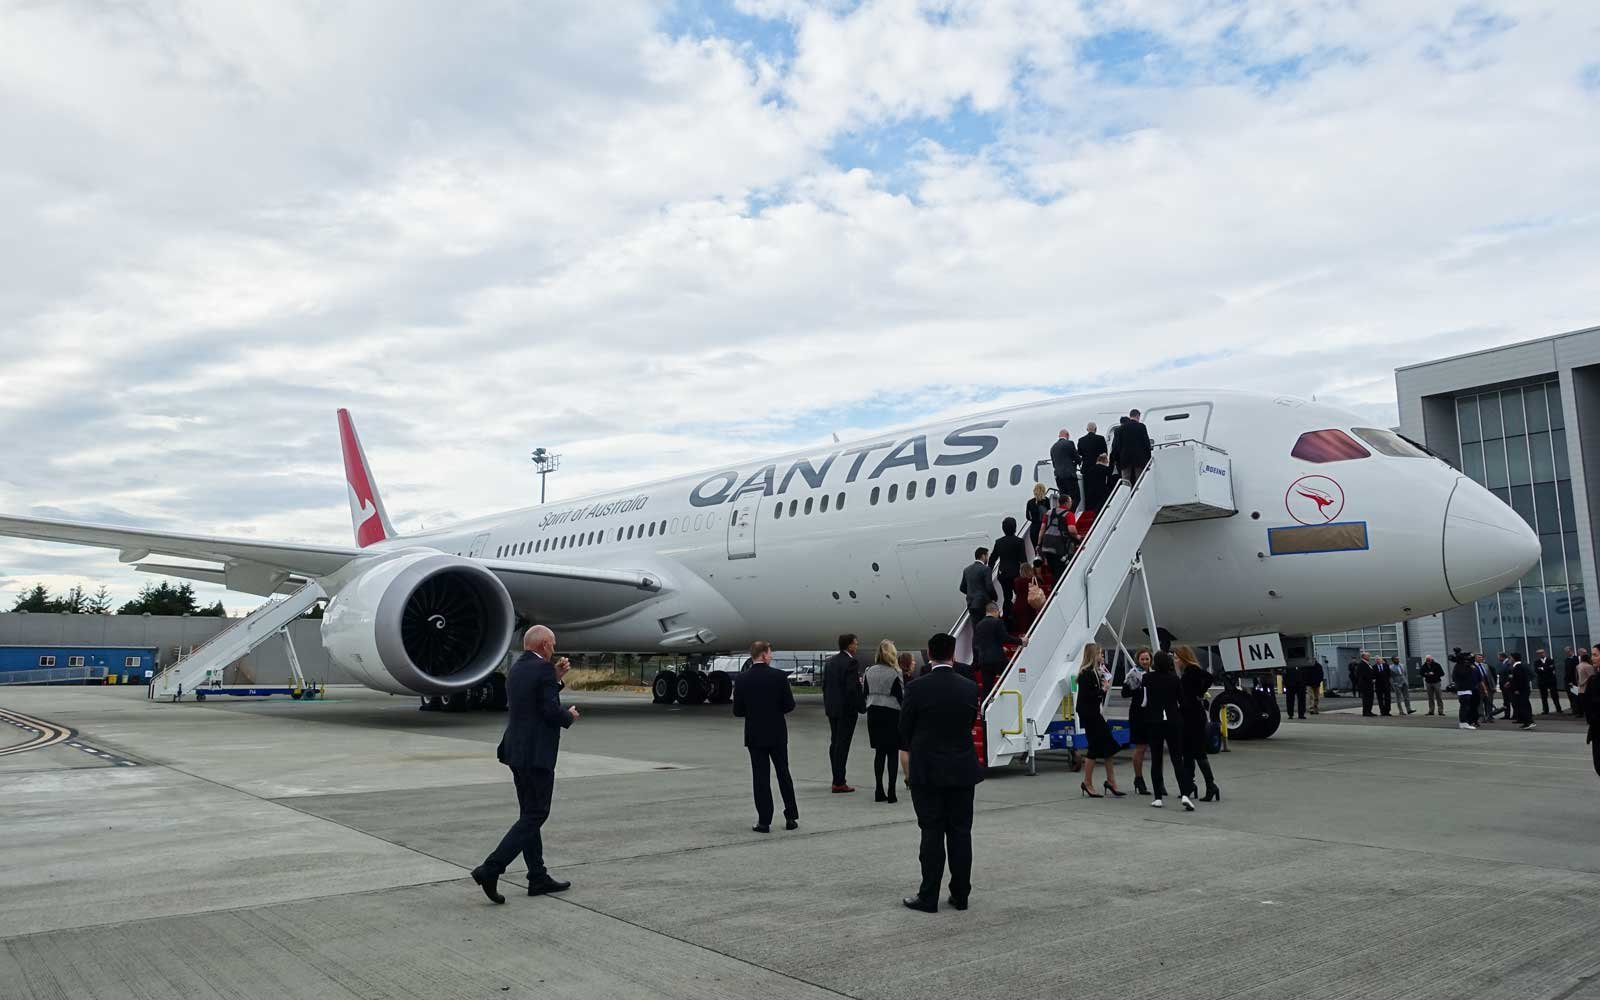 17 Ways Qantas Is Going to Make a 17-hour Flight Comfortable for